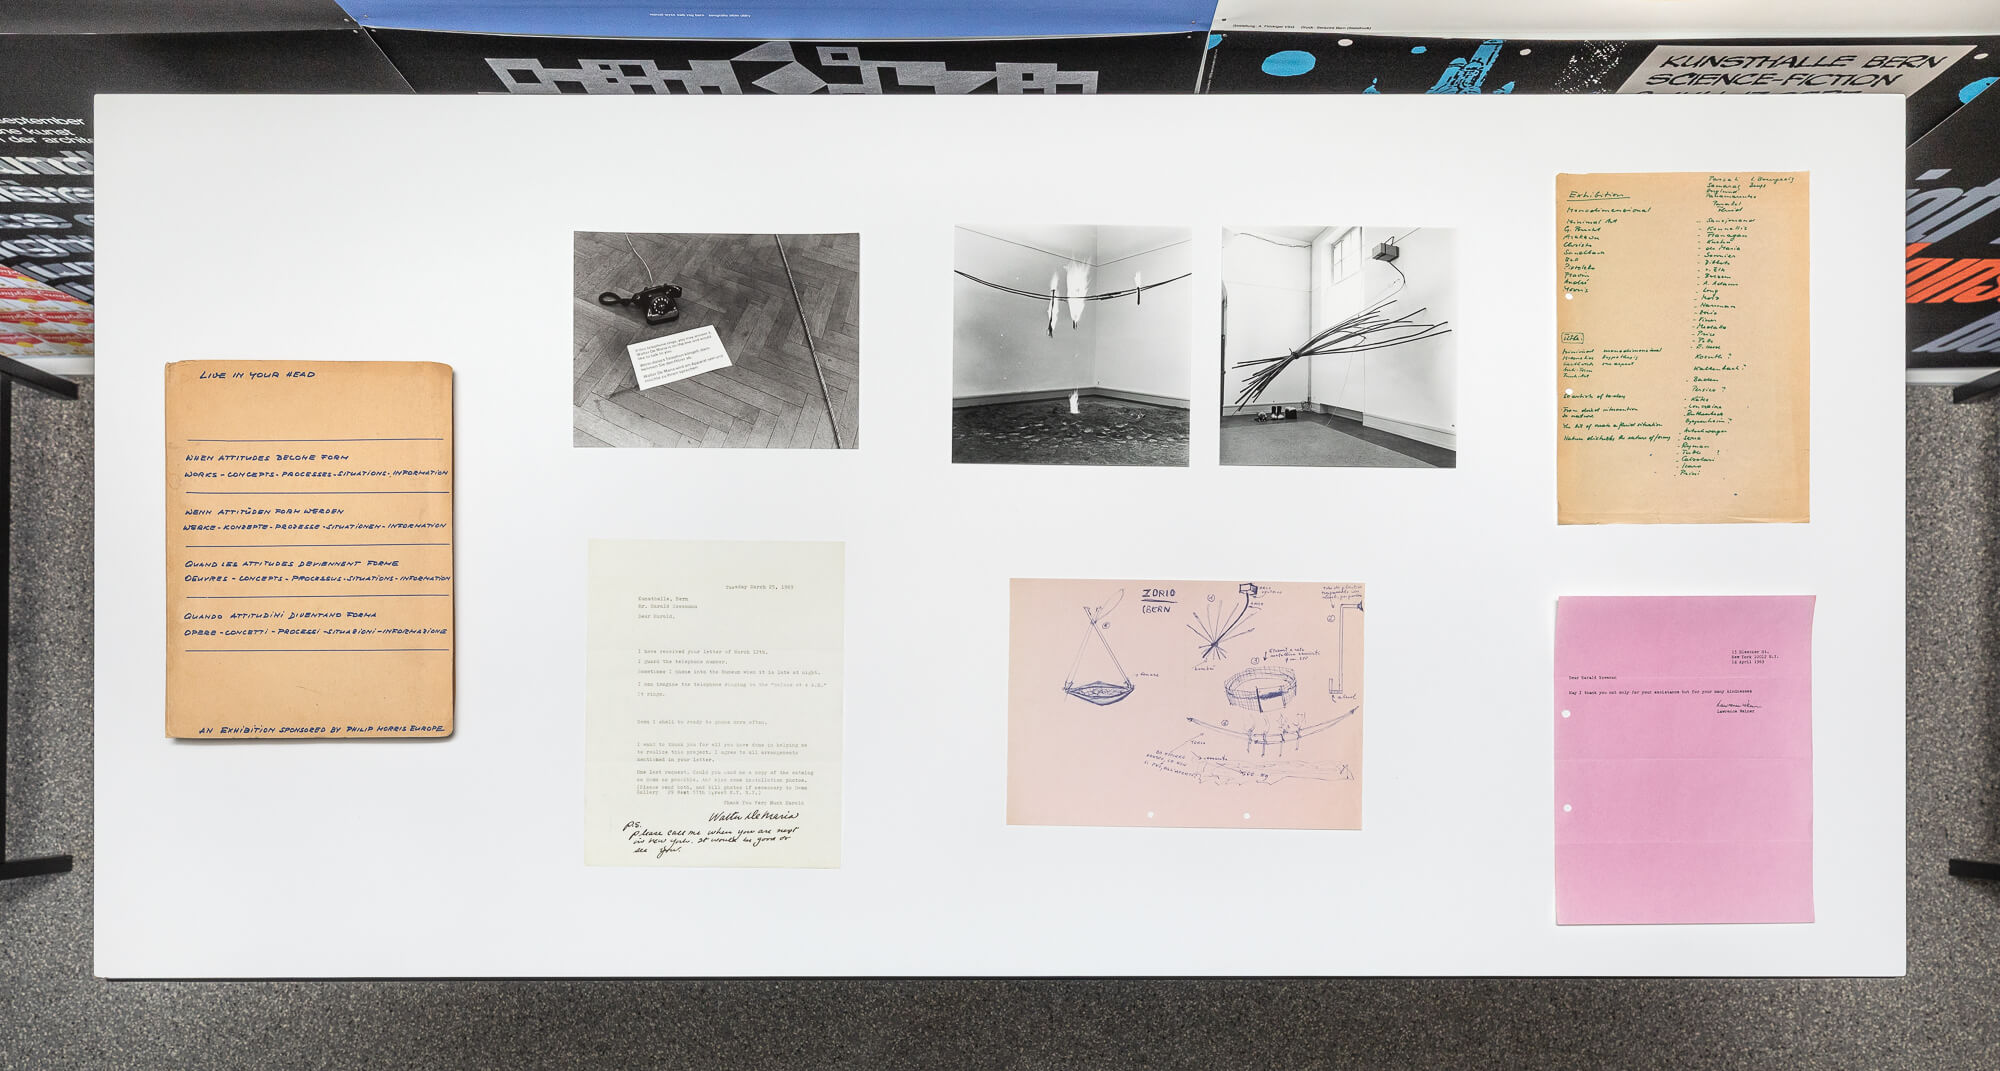 Harald Szeemann Study Room Grandfather A Pioneer Like Us When Attitudes Become Form